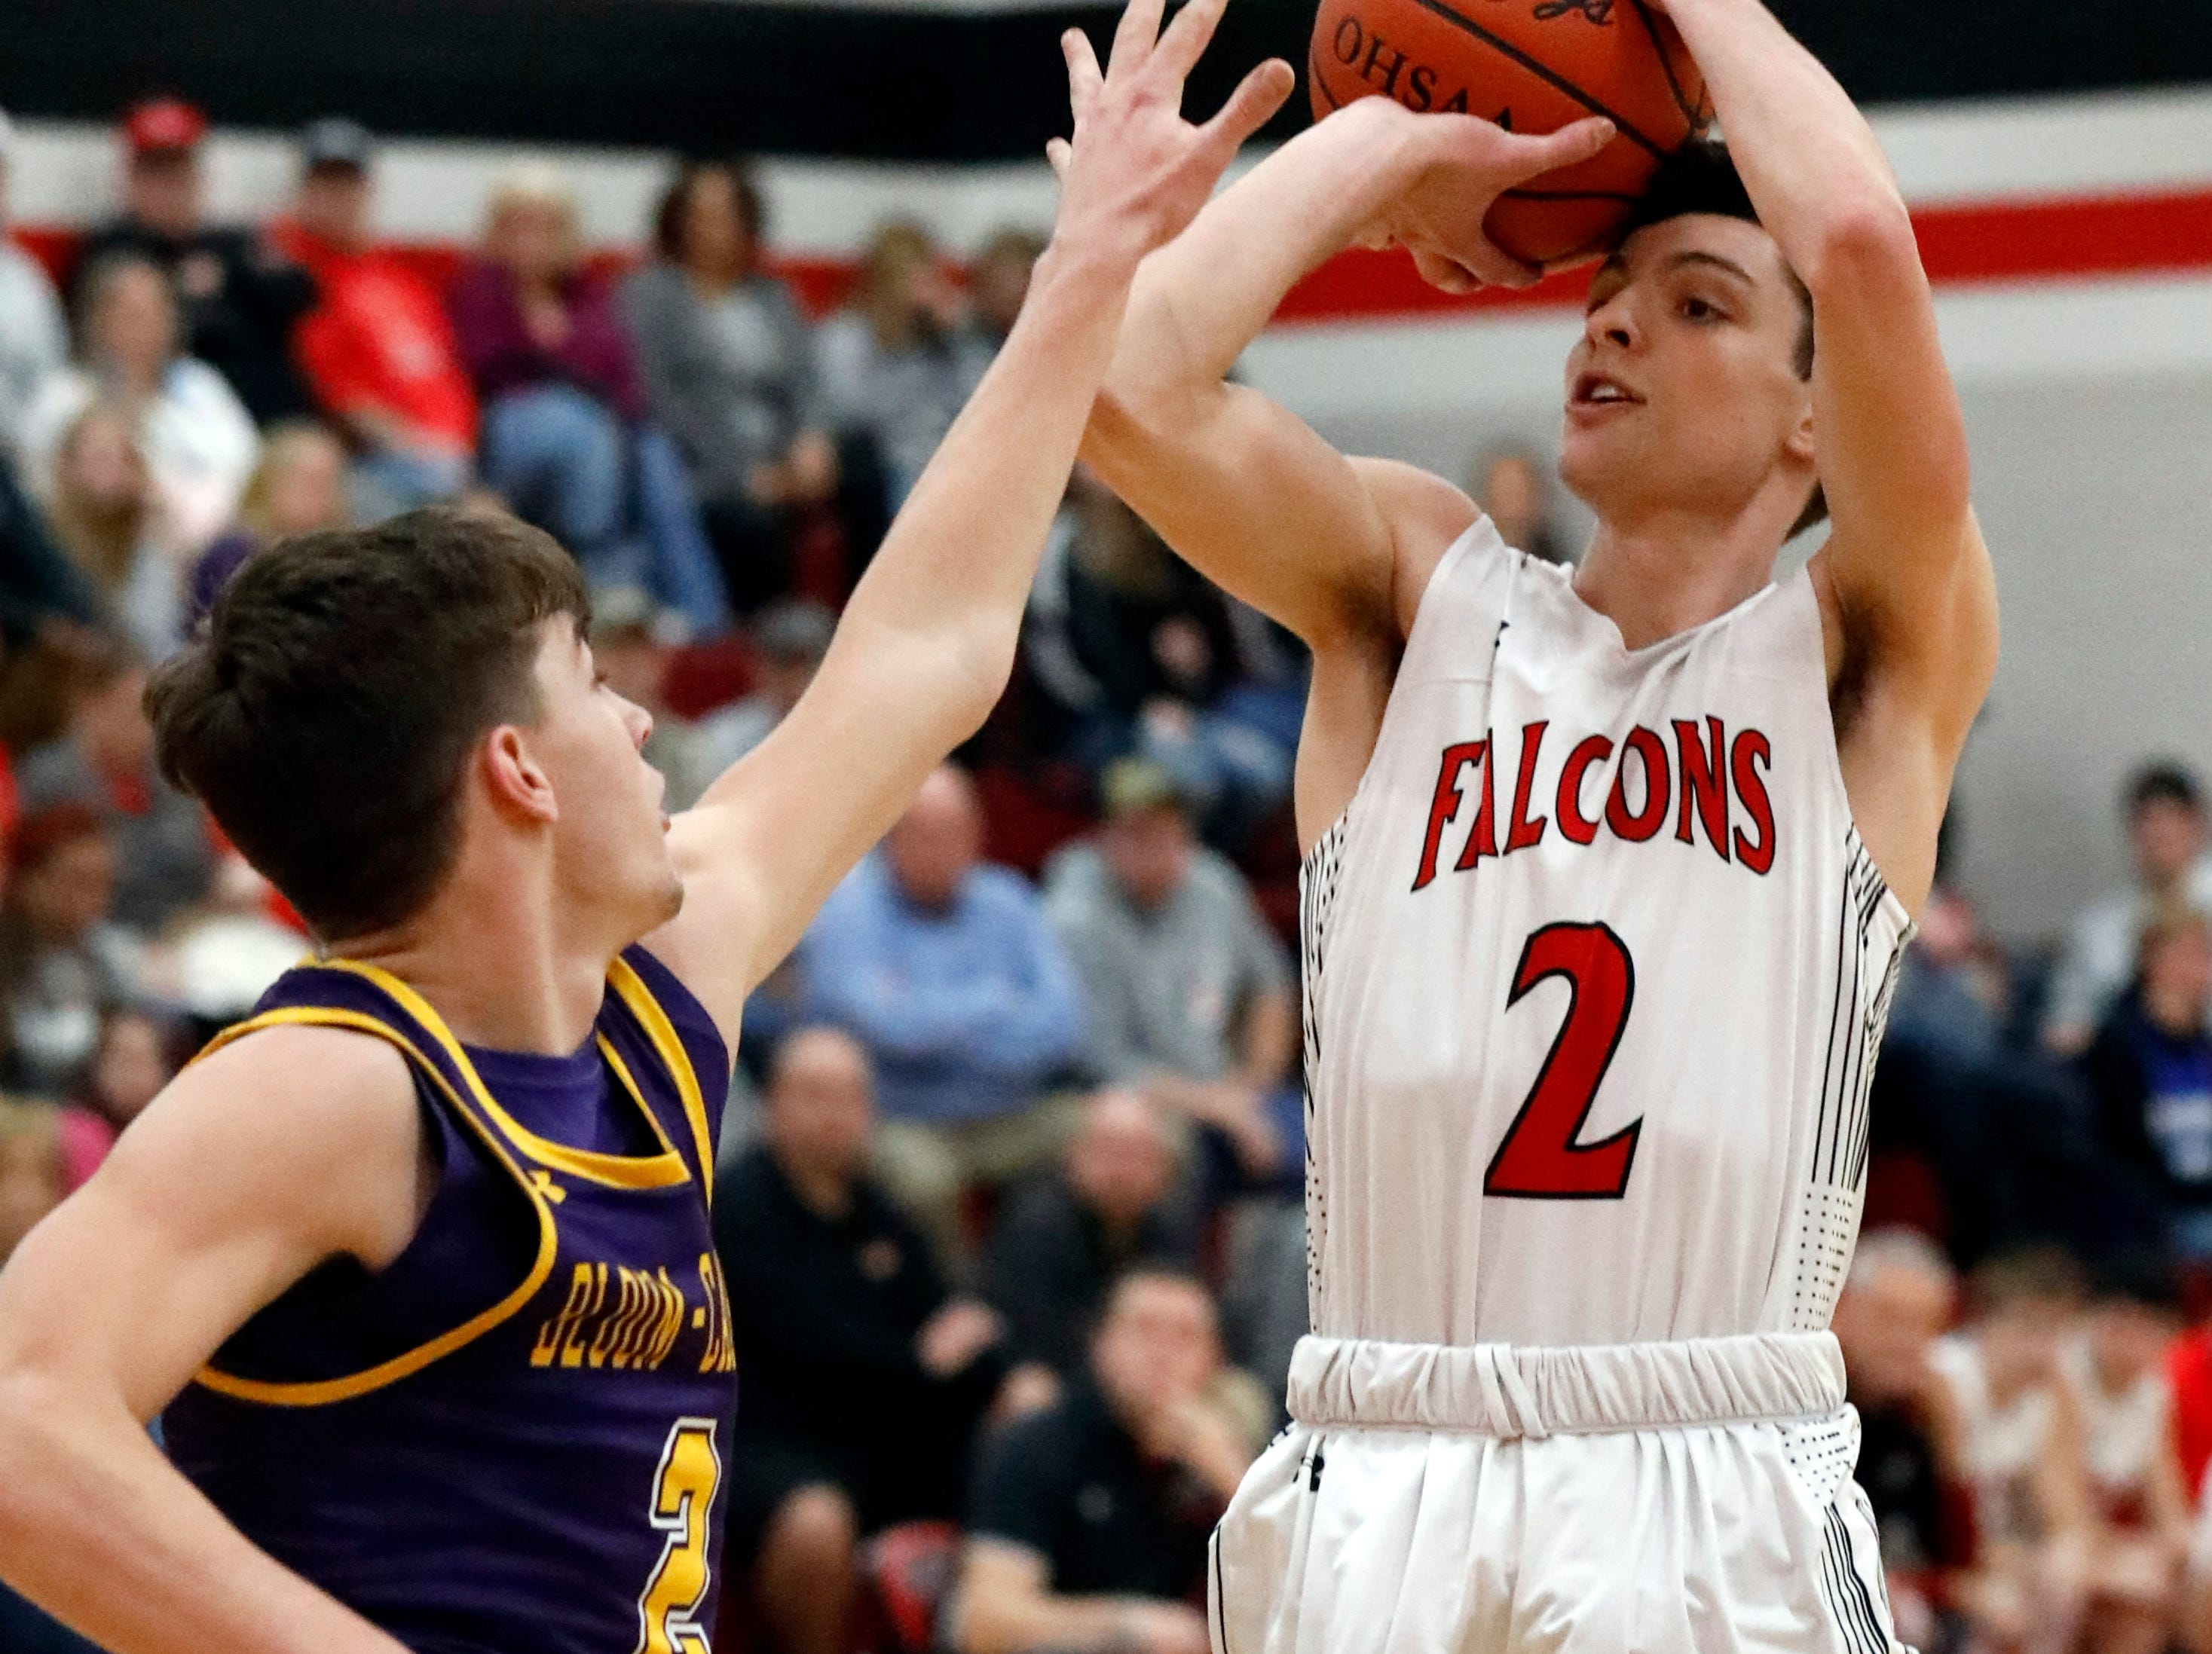 Fairfield Union's Evan Conley takes a shot over Bloom-Carroll's Otto Kuhns during Friday night's game, Jan. 18, 2019, at Fairfield Union High School in Rushville. The Falcons defeated the Bulldogs 42-31.